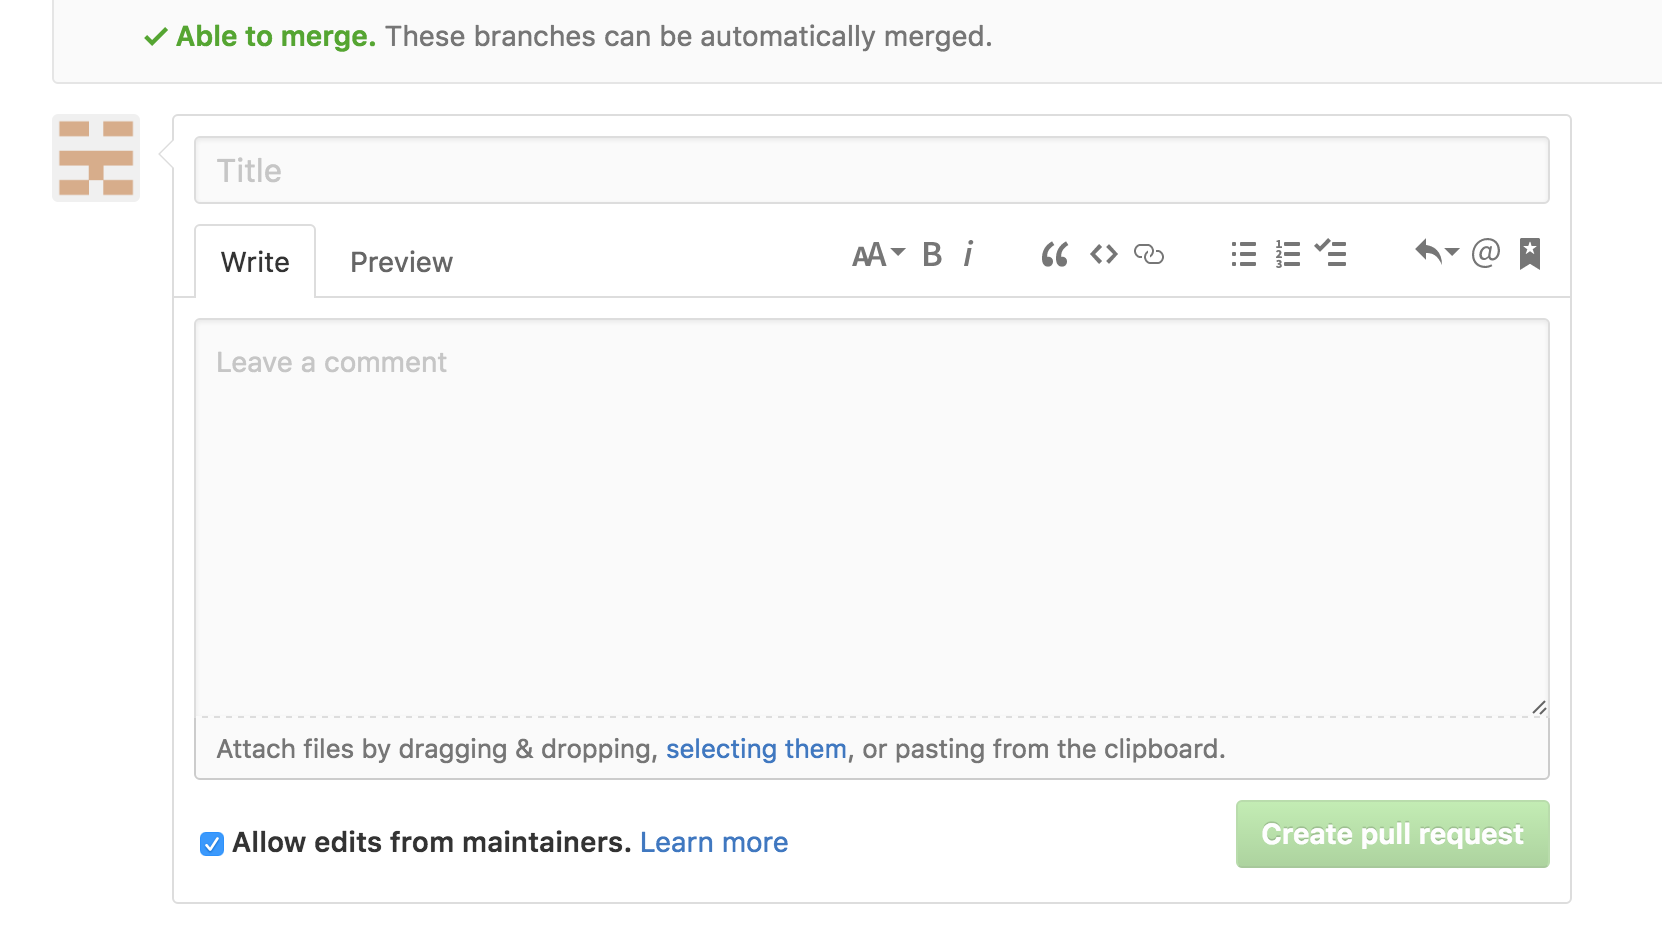 How to Create a Pull Request on Github